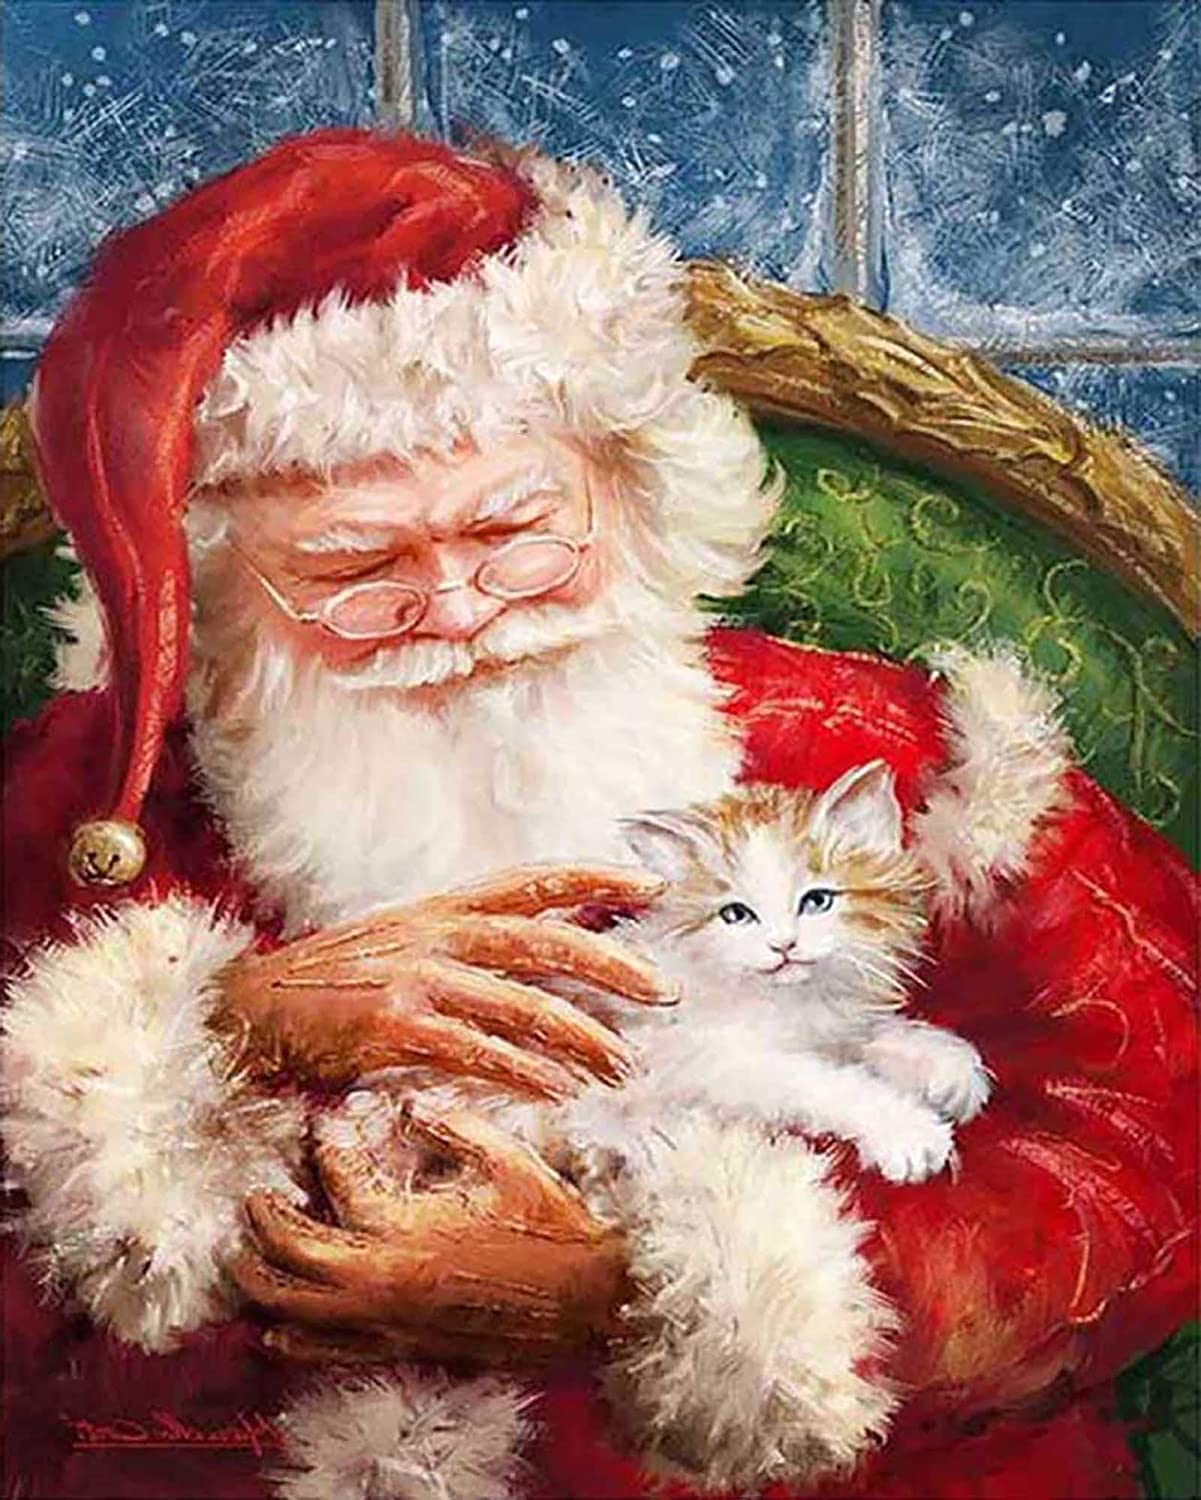 Zariocy Christmas Santa Cat Kitten Diamond Painting Round Full Drill by Number Kits, DIY Paint with Diamond Crystal Rhinestone Diamond Embroidery Arts Craft for Home Wall Decor 30x40cm/12x16 inch